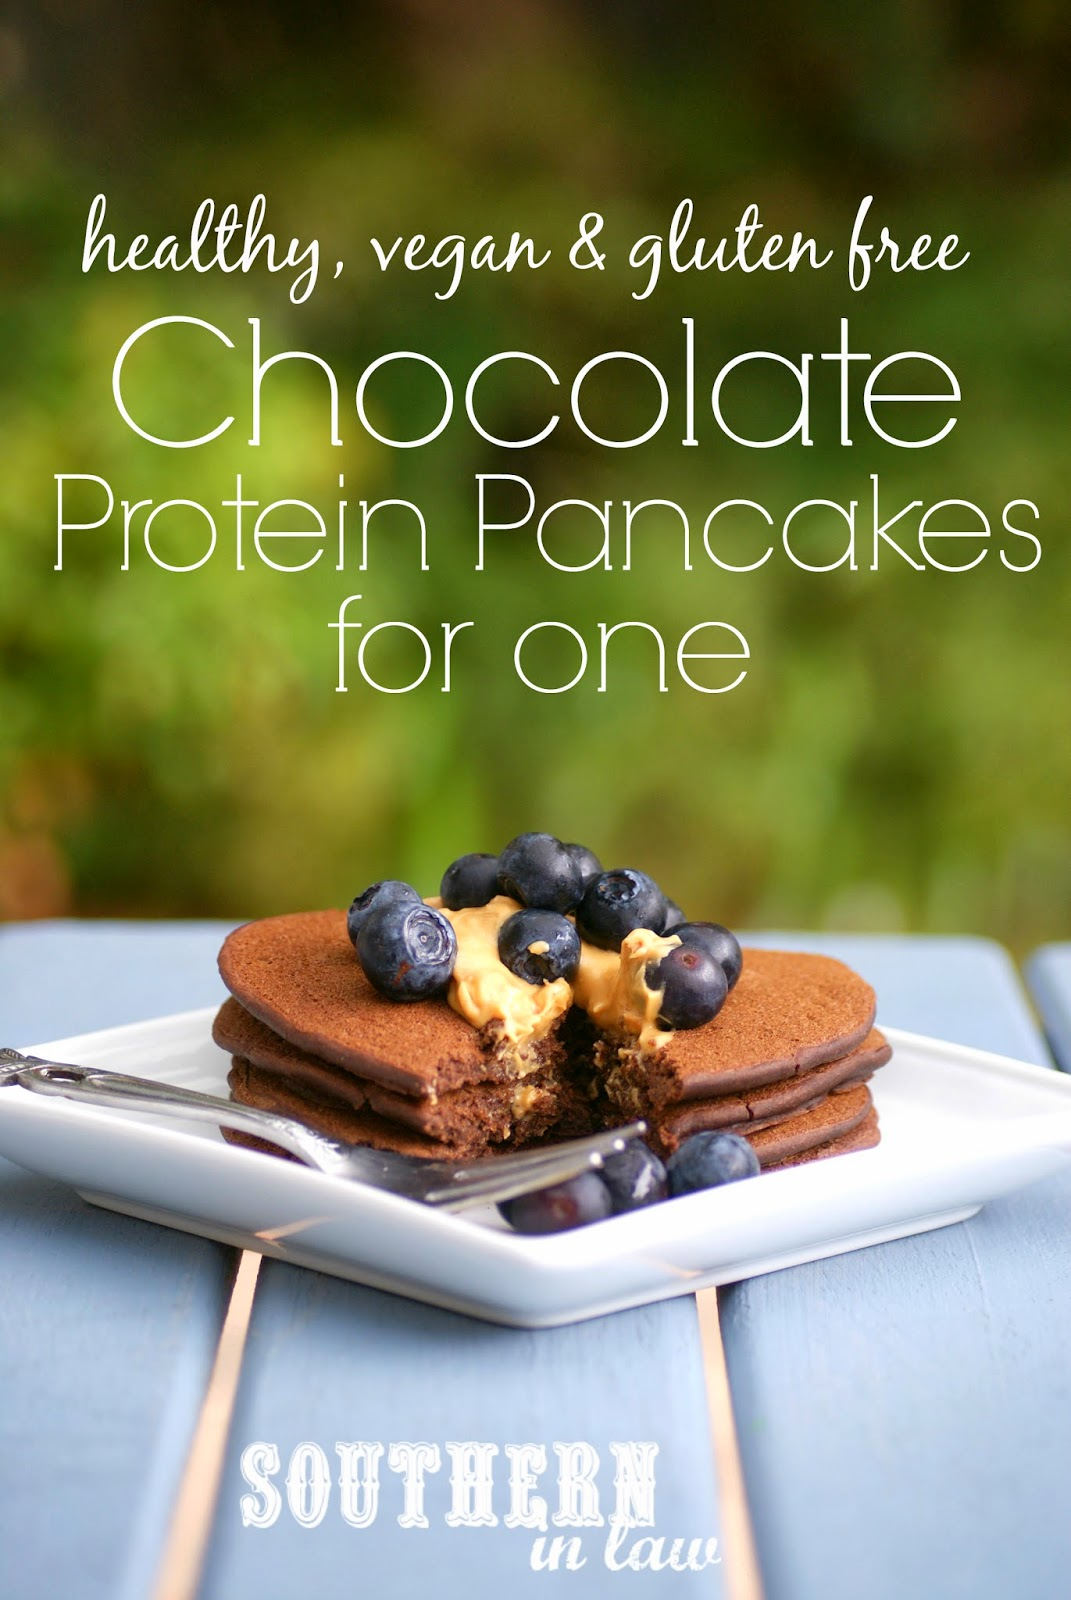 Healthy Chocolate Protein Pancakes - Single Serving - Gluten Free, Vegan, Low Fat, Sugar Free